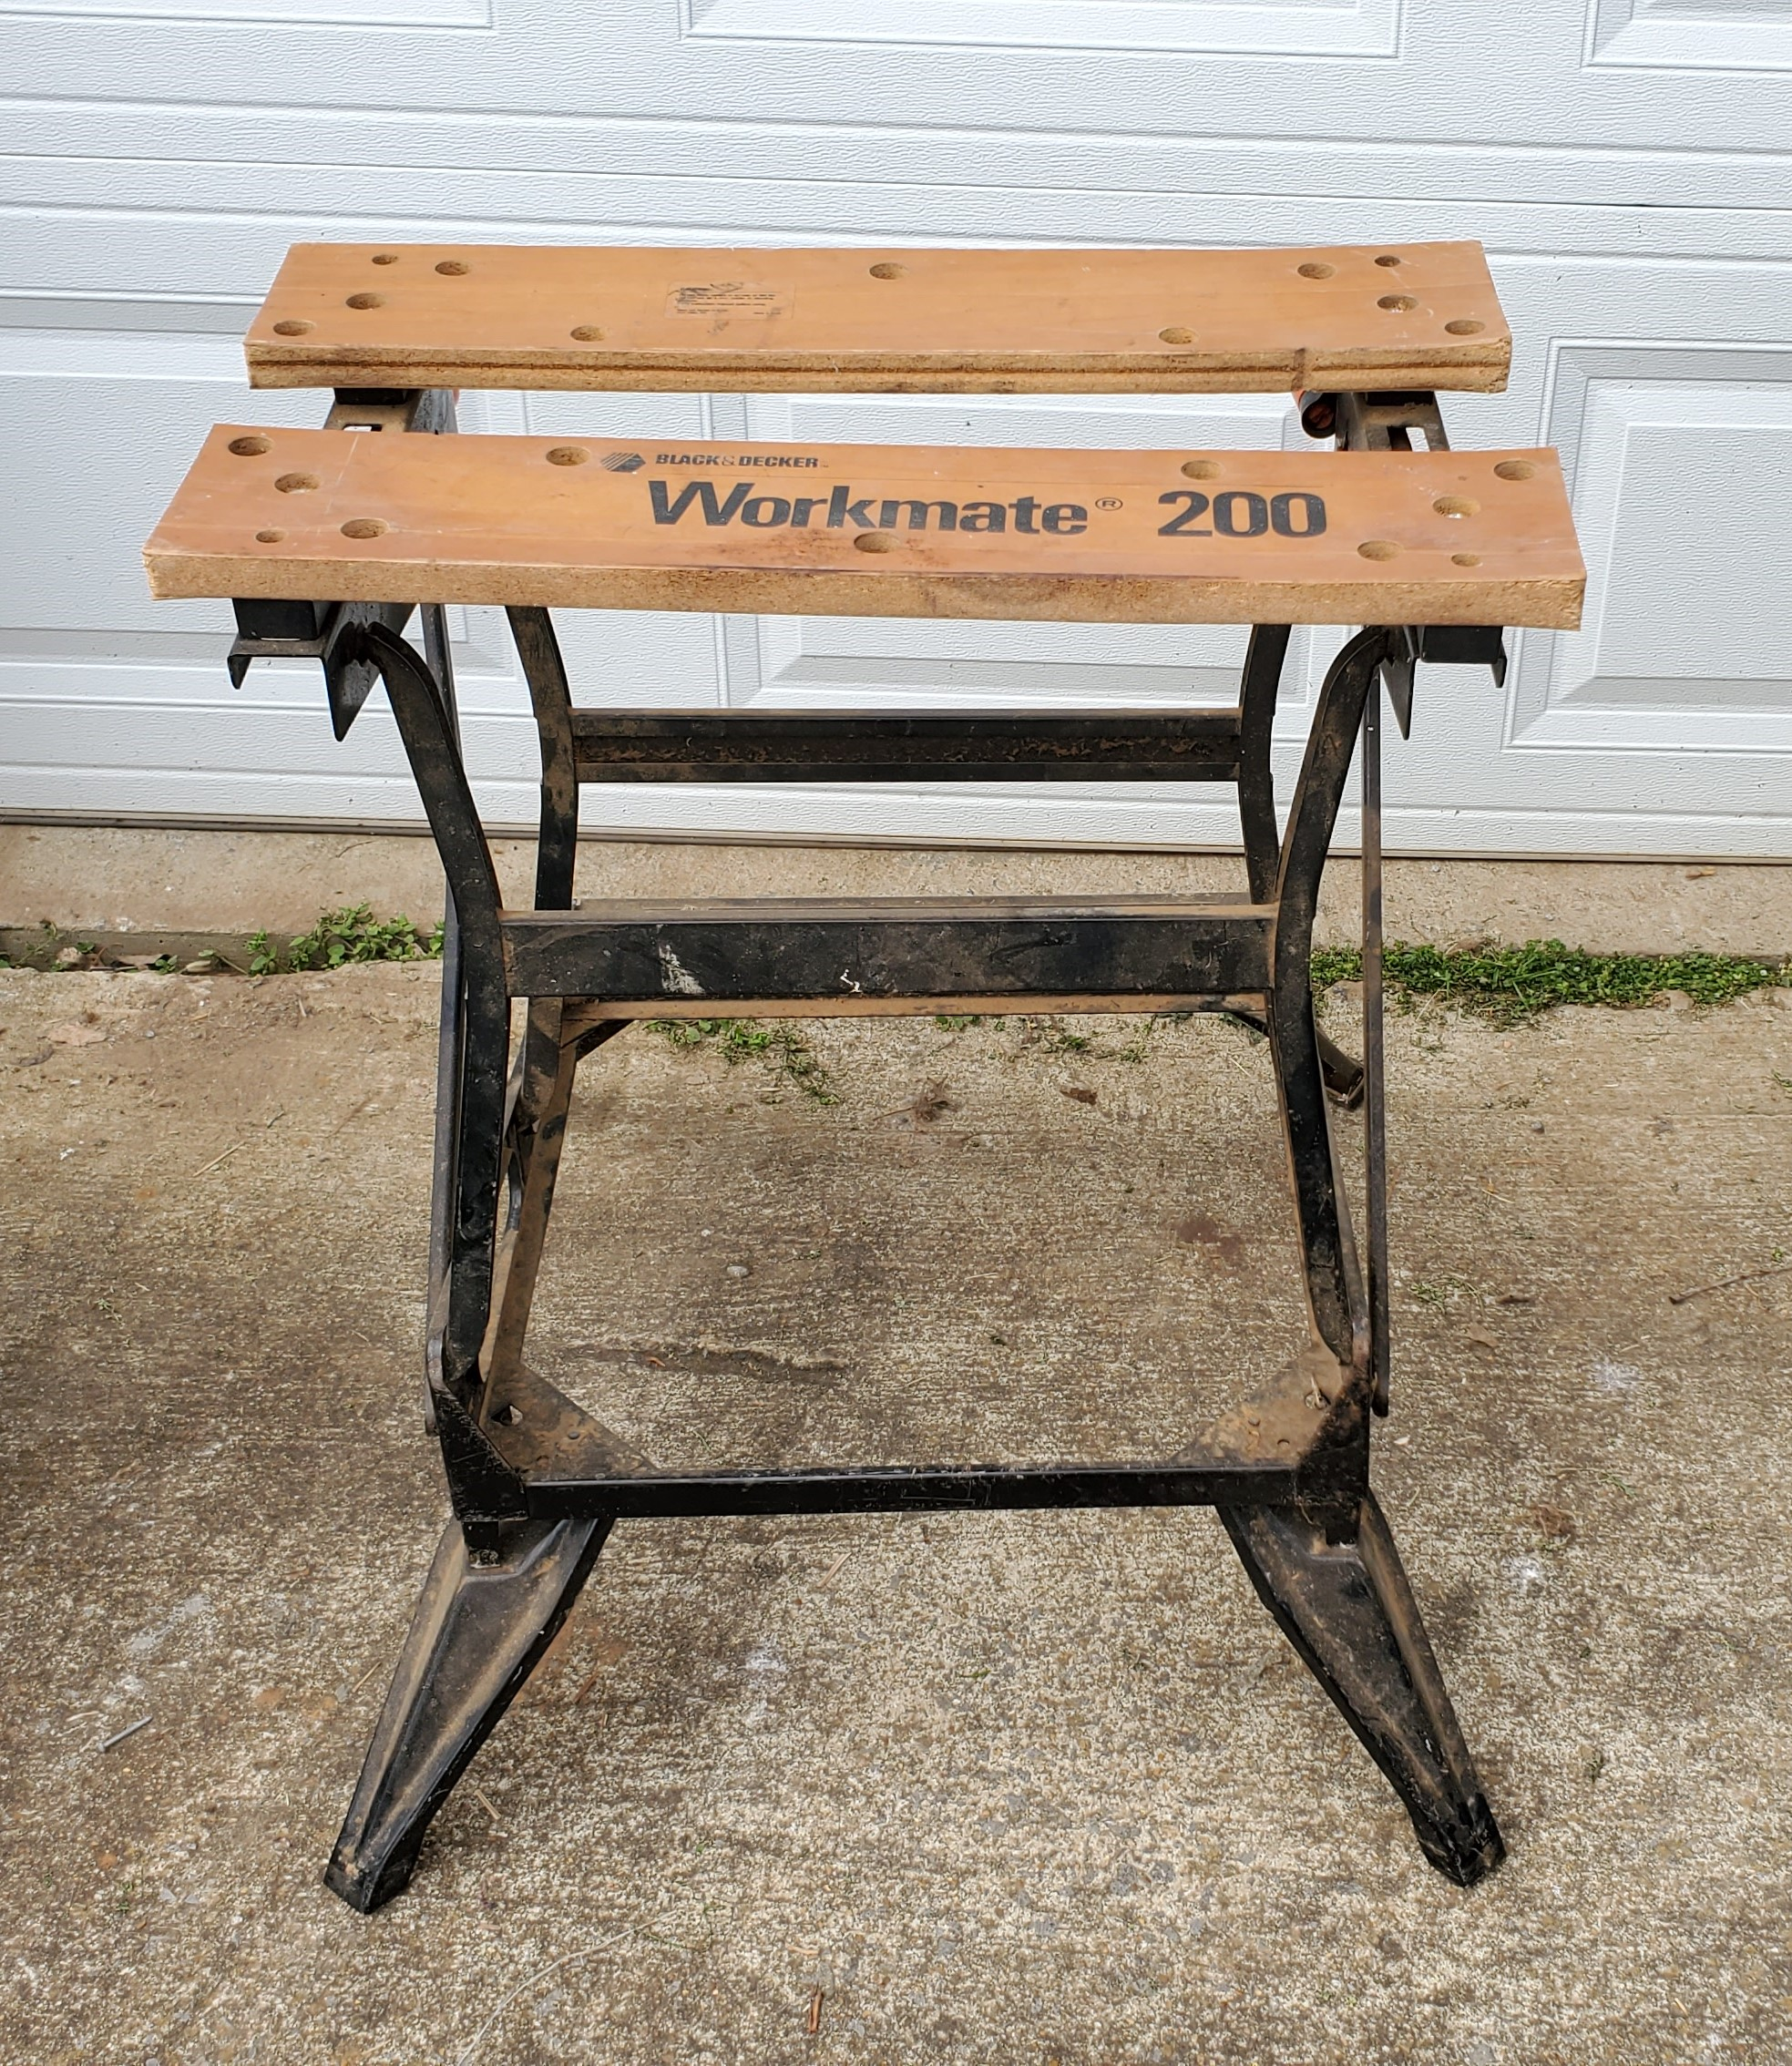 Workmate 200 Work Bench